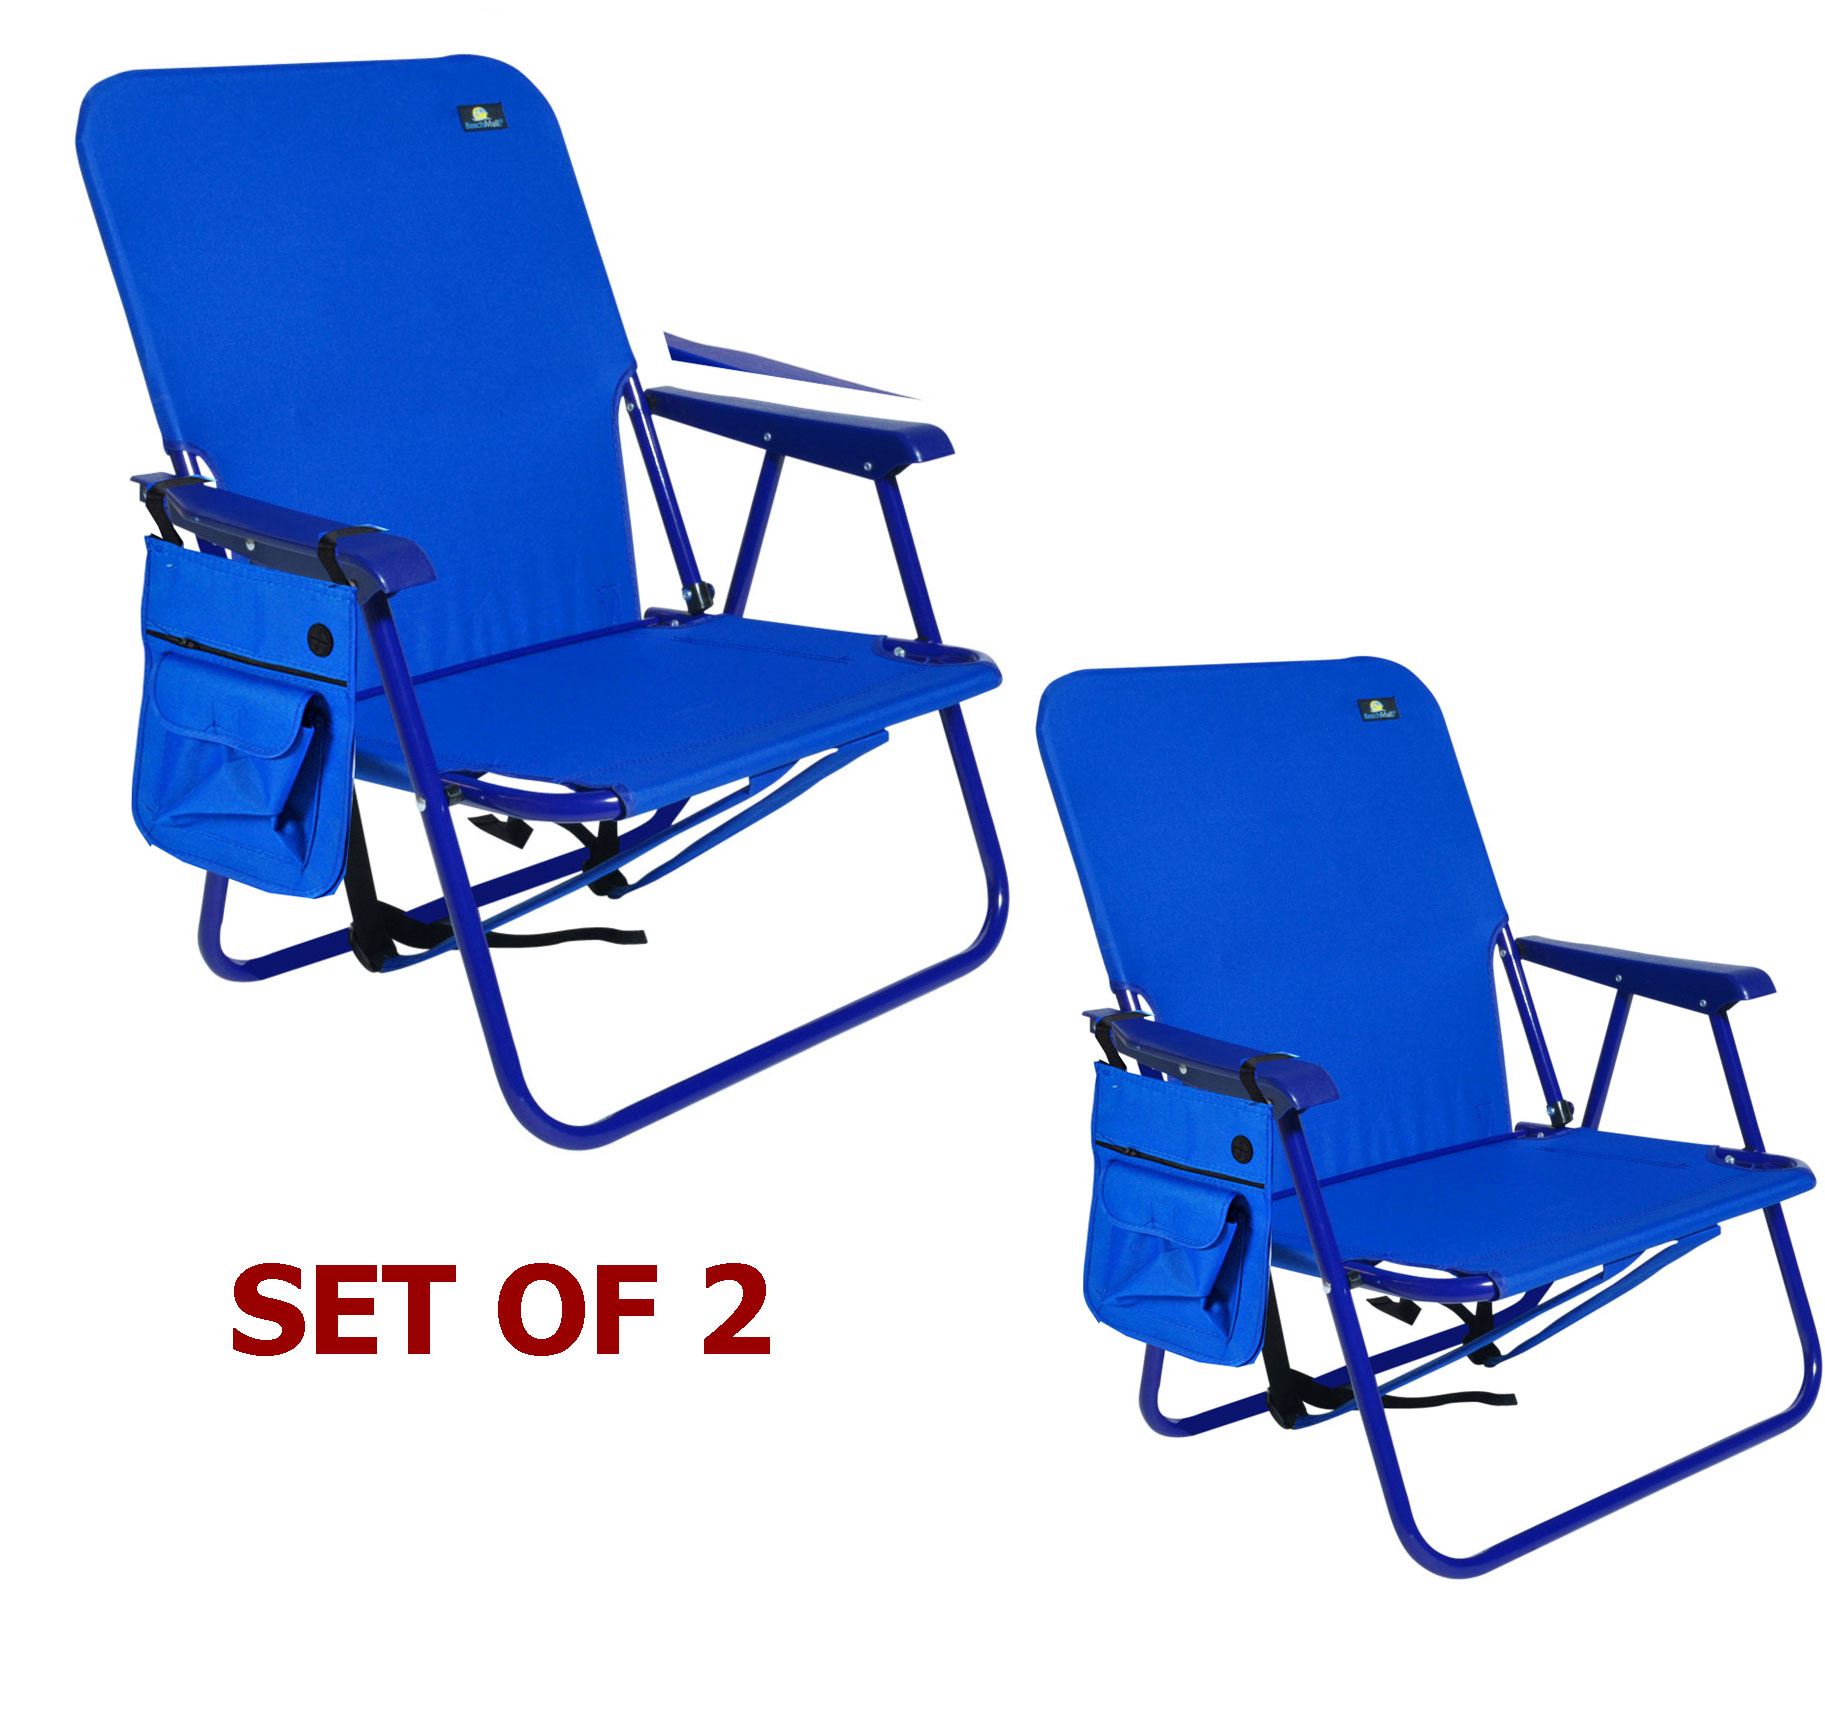 Steel Backpack Beach Chair and Camping Sports Chair - Set of 2 Chairs